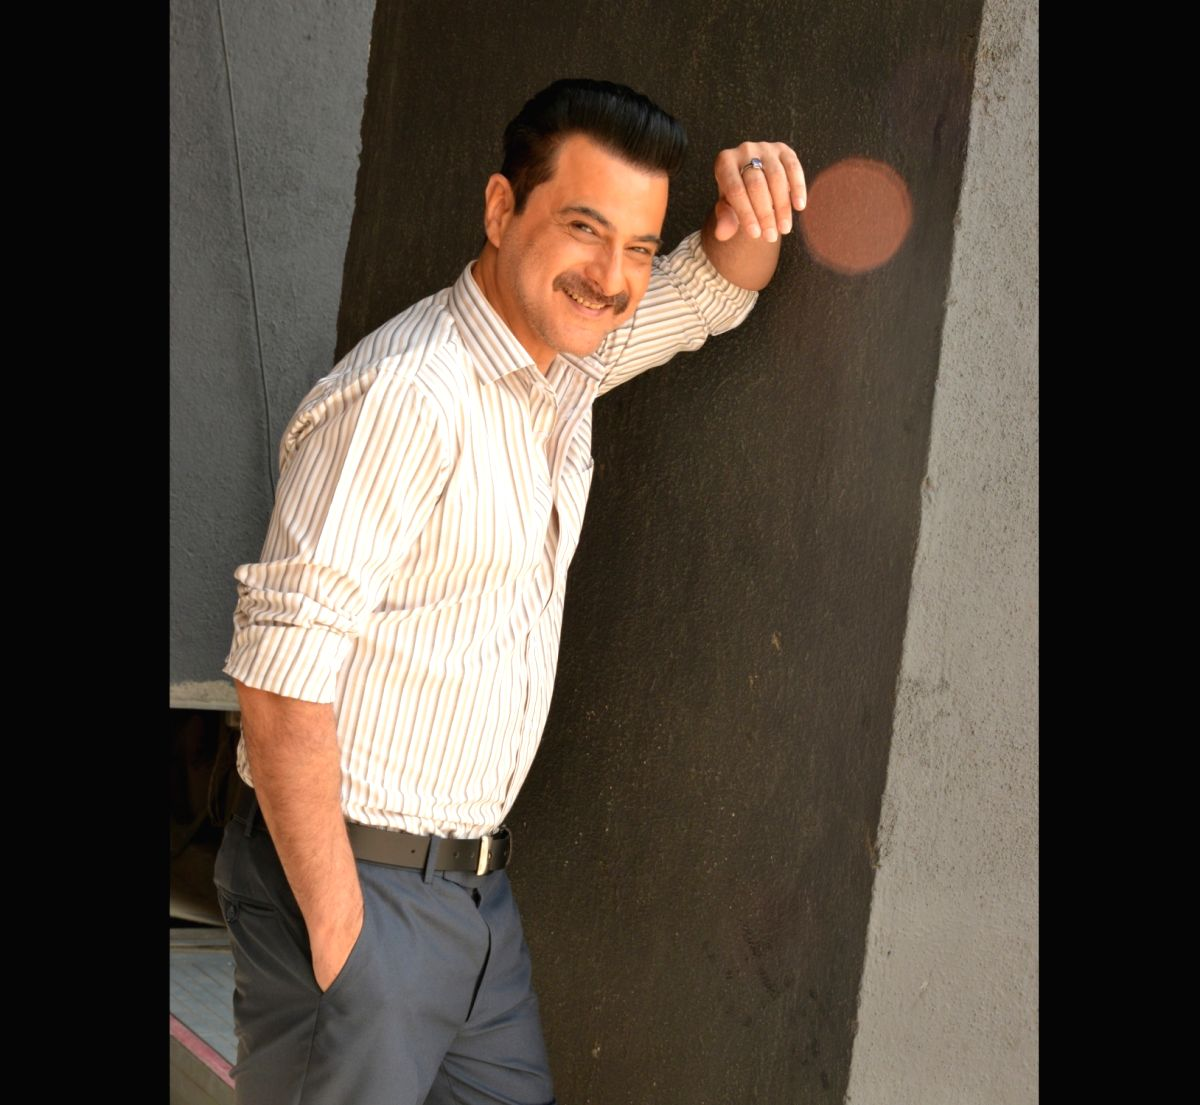 Aamir Khan, Deepika Padukone, Hrithik Roshan, Varun Dhawan, John Abraham, Vidya Balan and Anil Kapoor were some of the Bollywood actors who were photographed exercising their right to vote on October 21. But actor Sanjay Kapoor was left disappointed